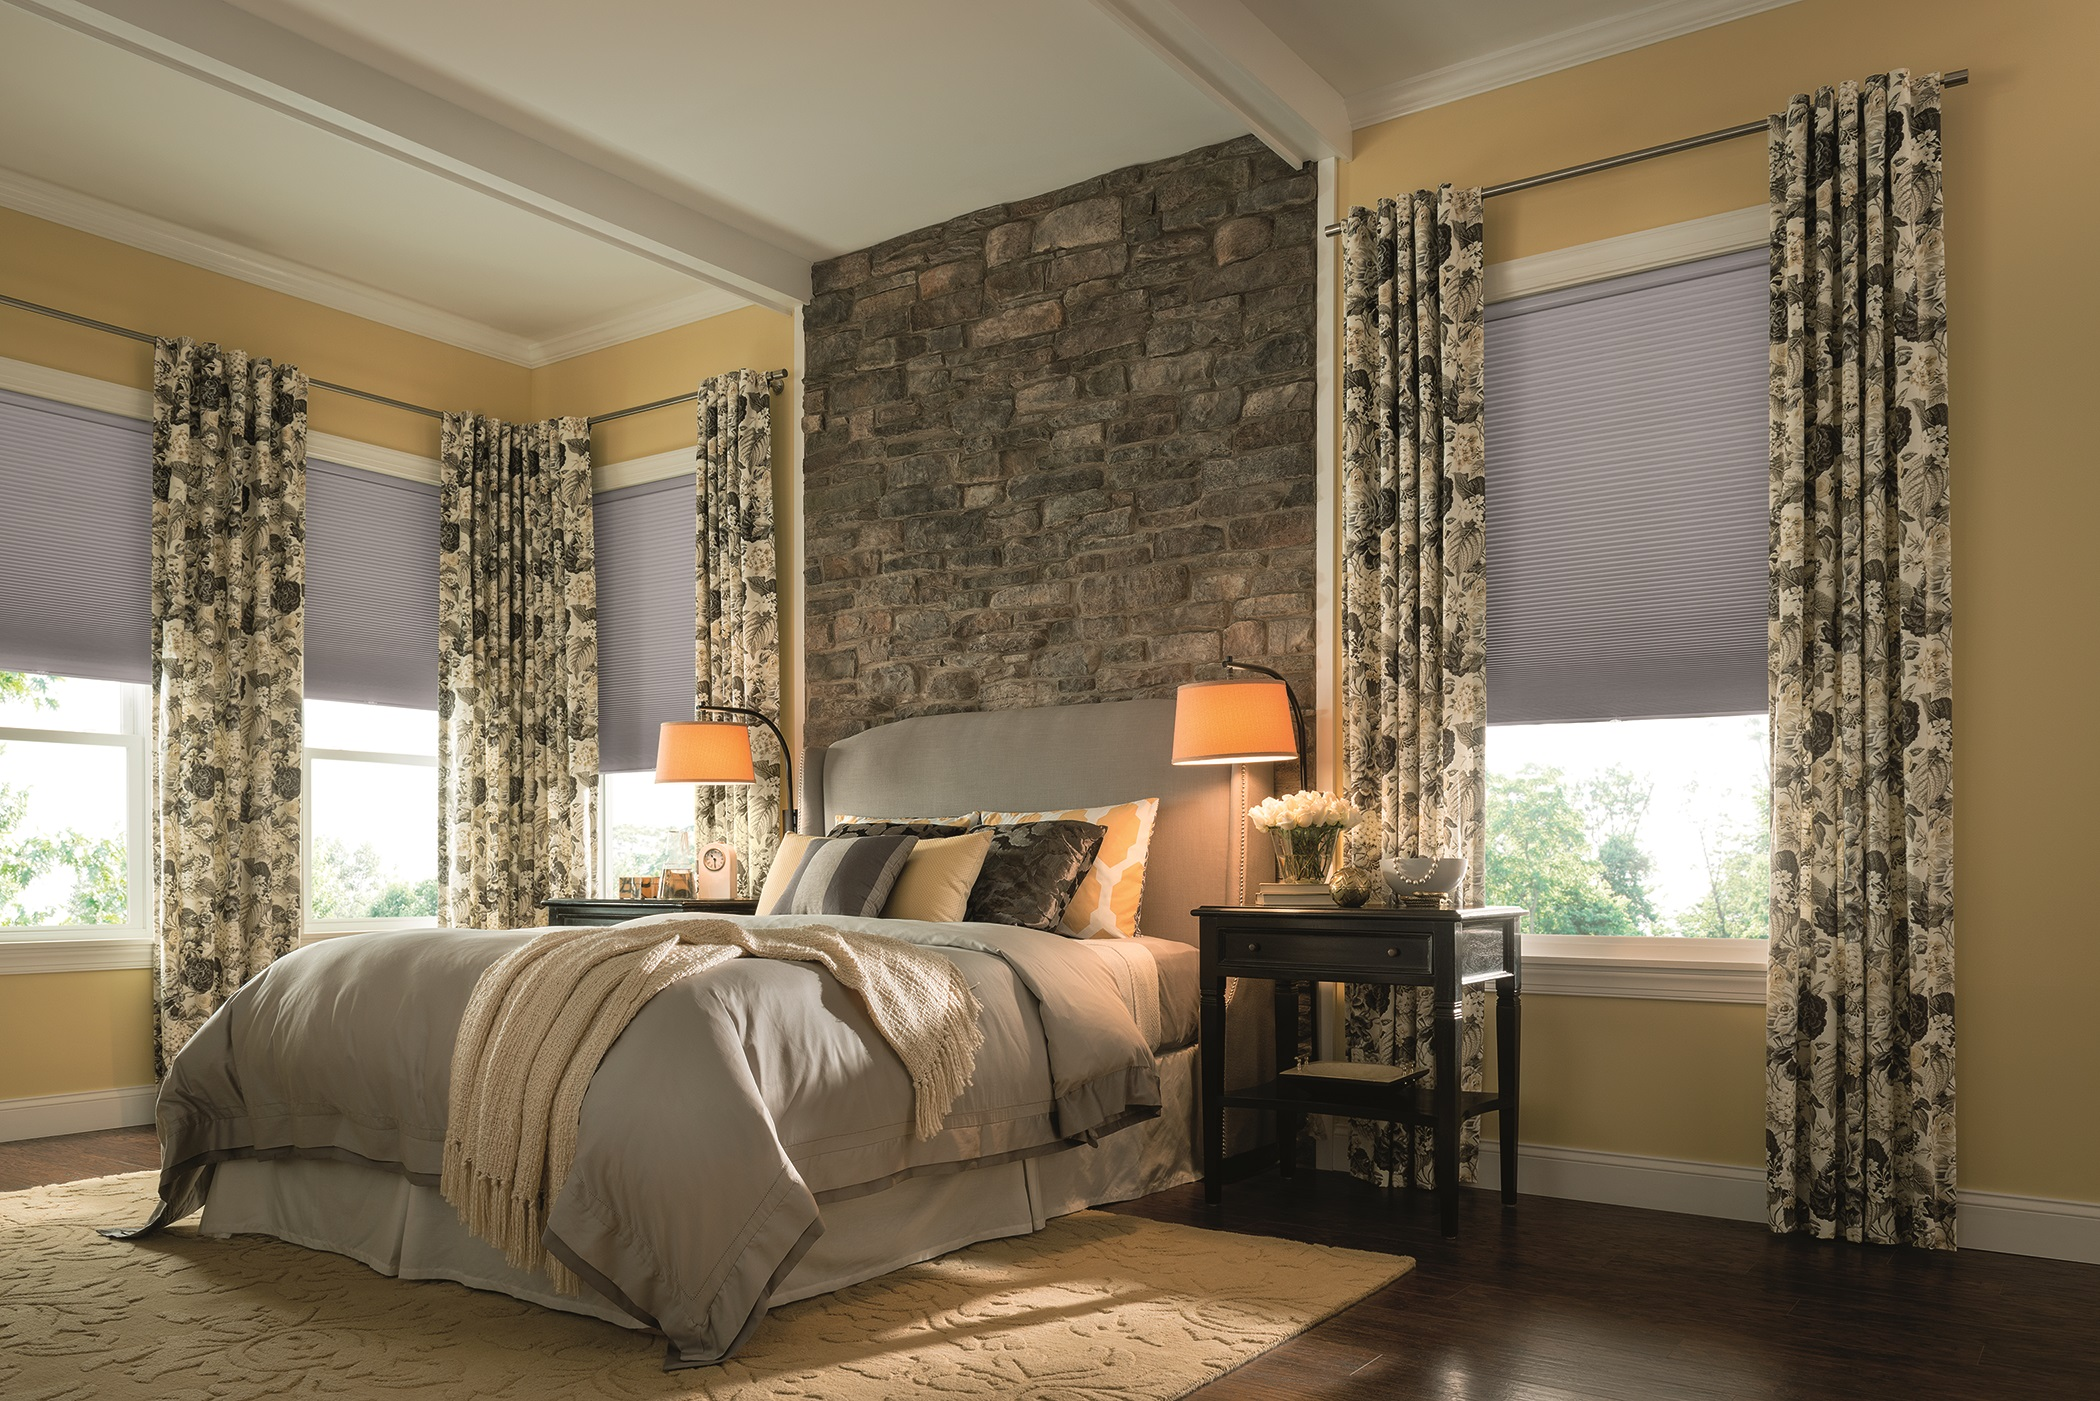 From fresh, exciting fabrics to expanded, simplified valance designs to elegant, popular drapery styles, design your home with creative combinations of these soft goods with traditional blinds, shutters, and shades.